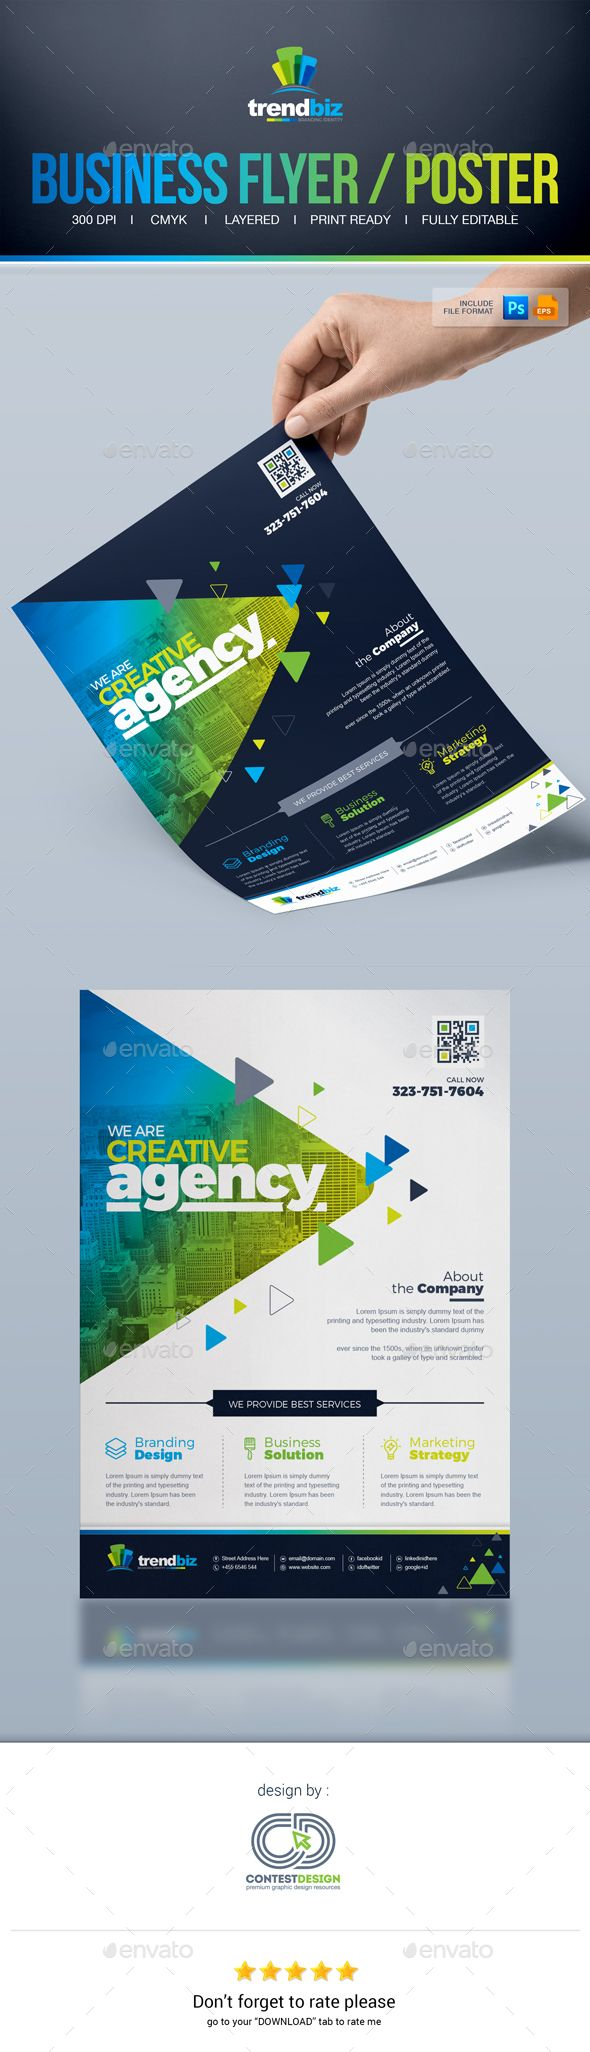 Corporate Business Flyer / Poster Advertising Template PSD, Vector EPS